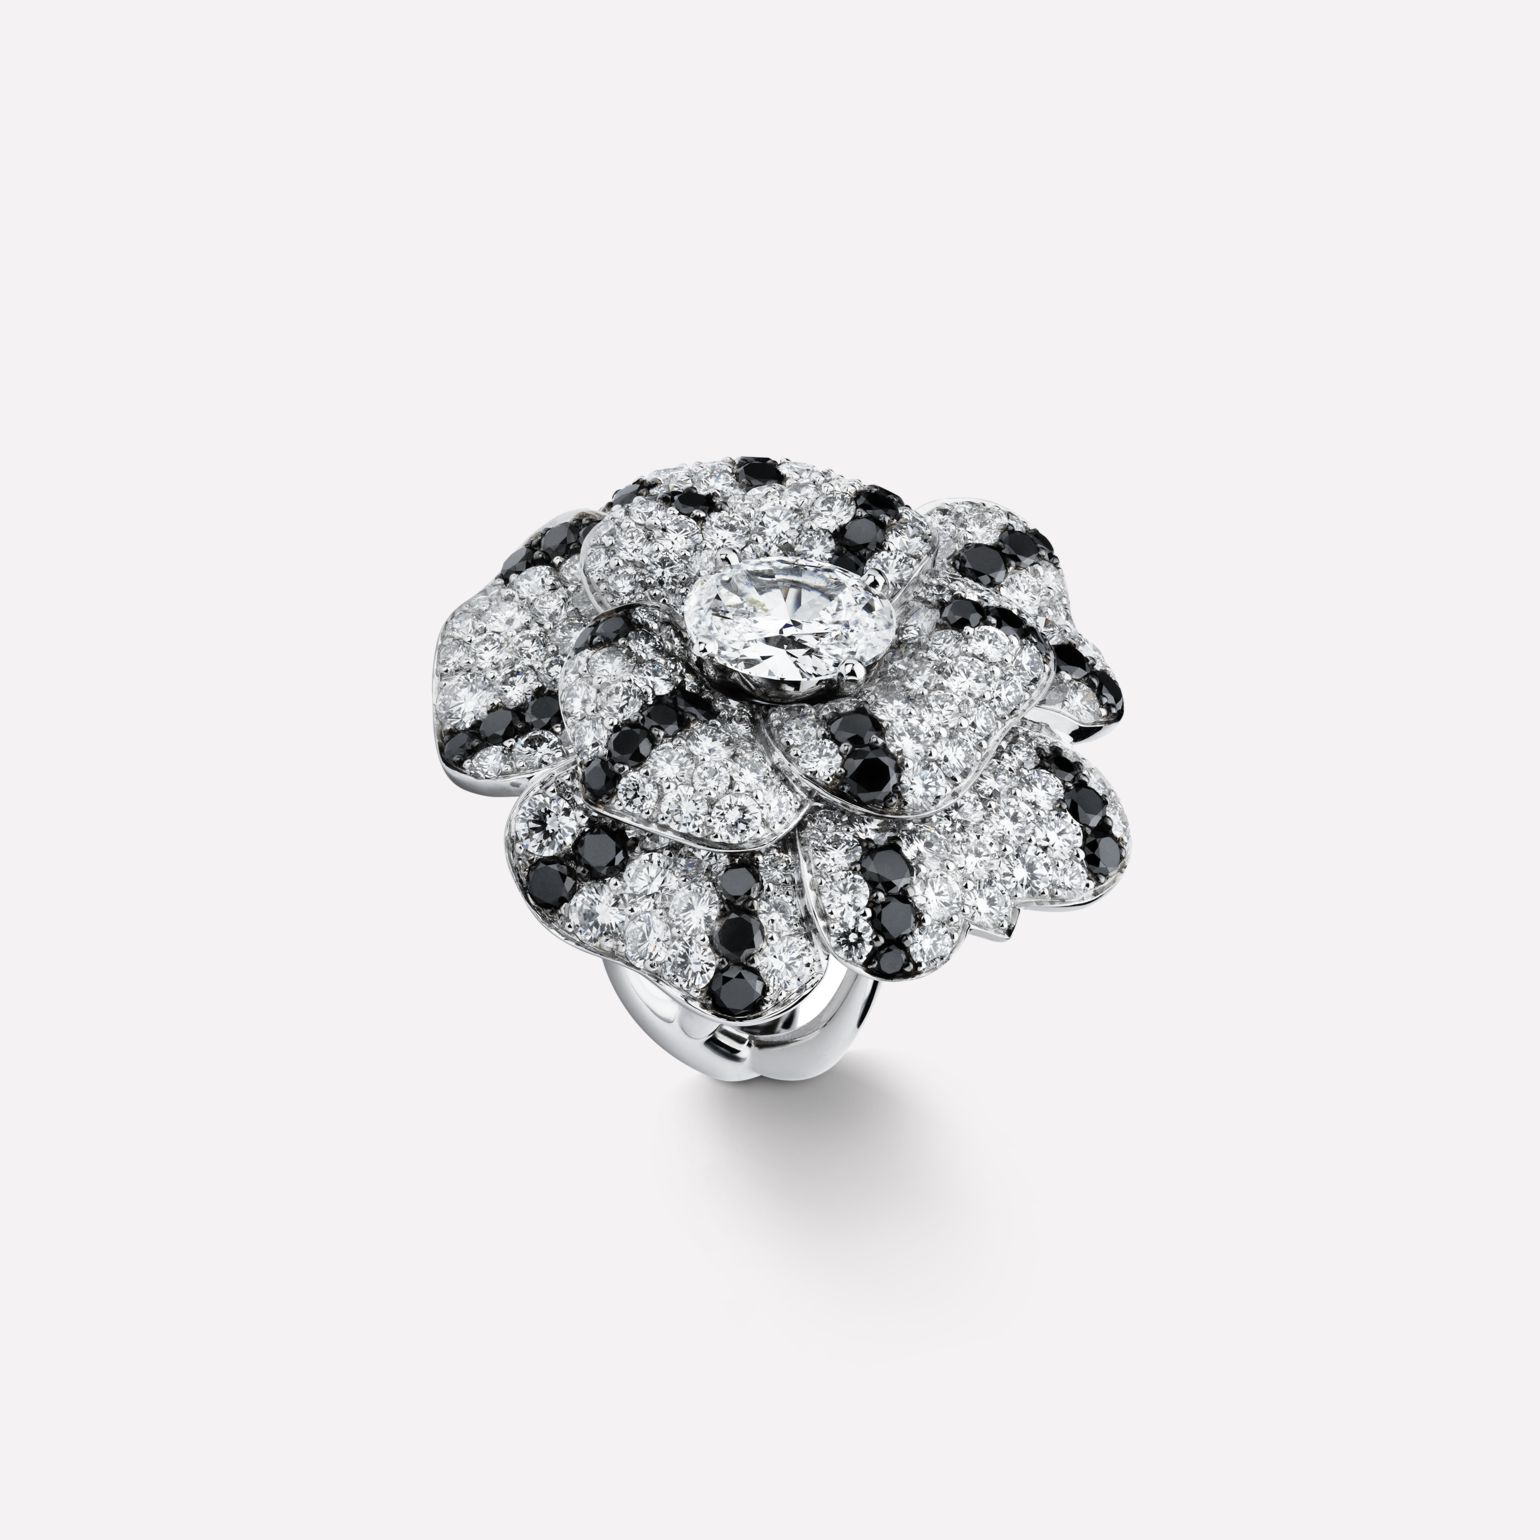 Camélia Ring Pétales de Camélia ring in 18K white gold, black diamonds and central diamond